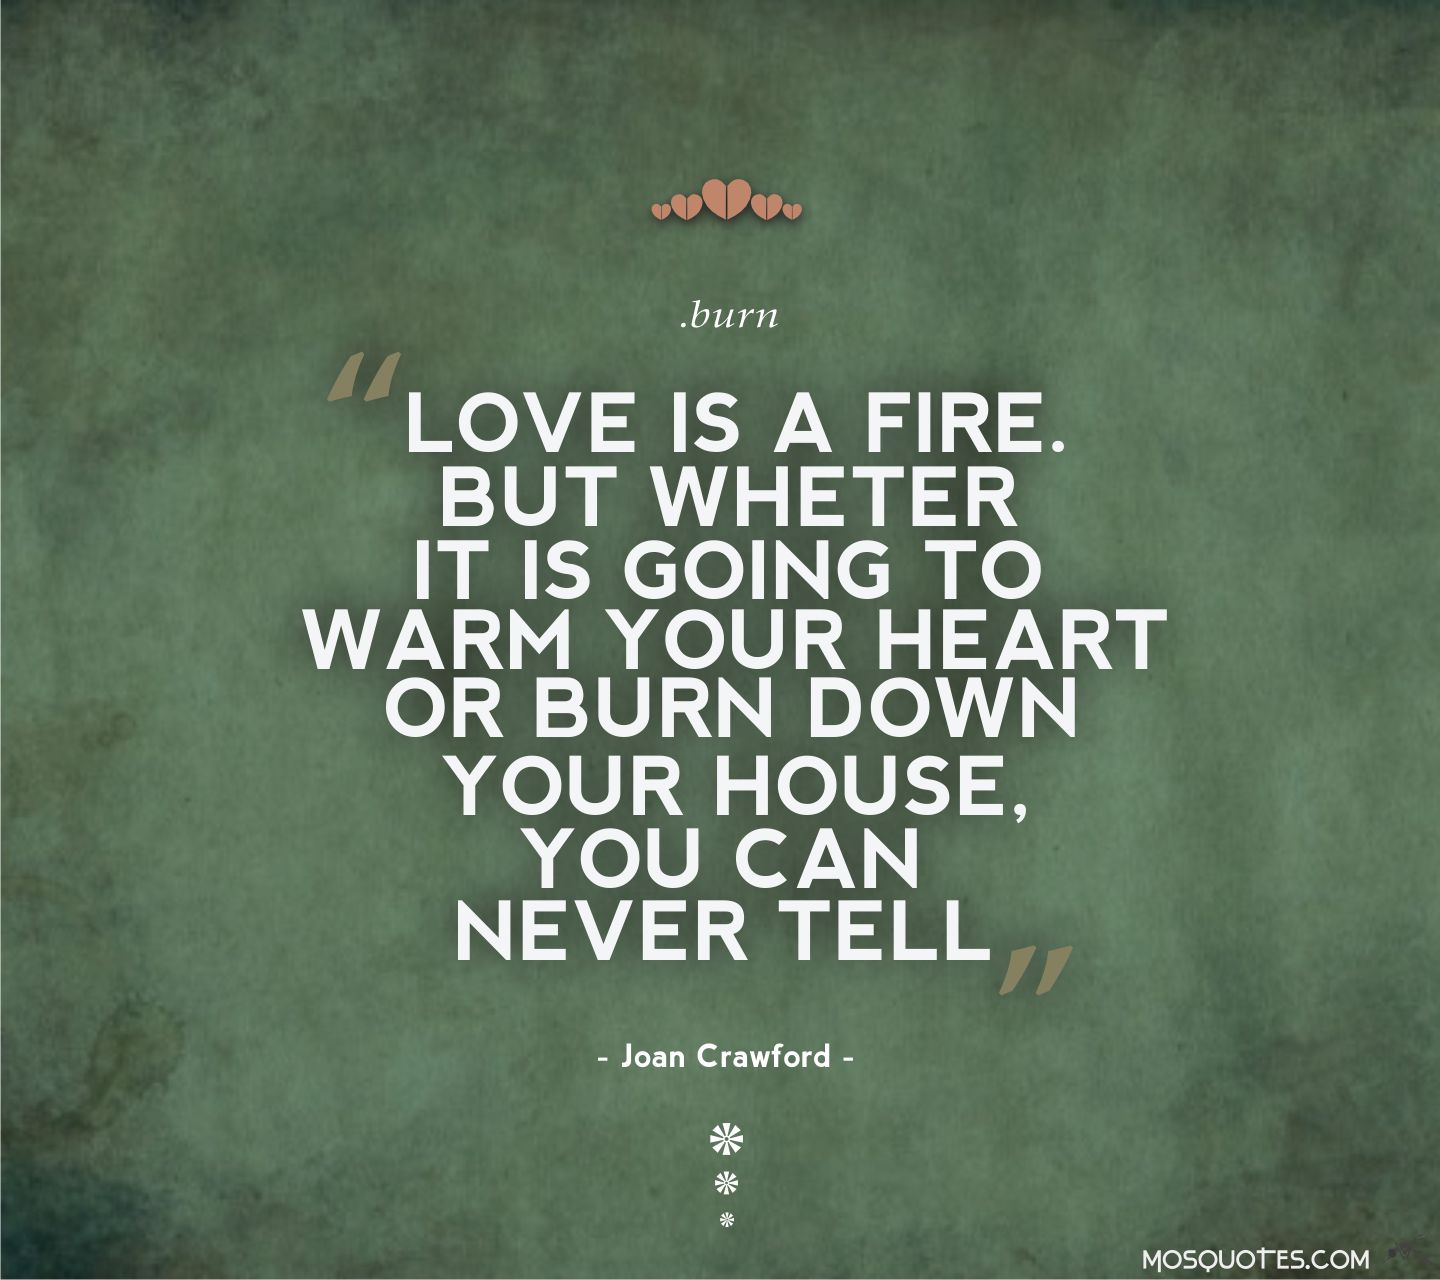 Quotes About The Heart: Your Heart On Fire Quotes. QuotesGram